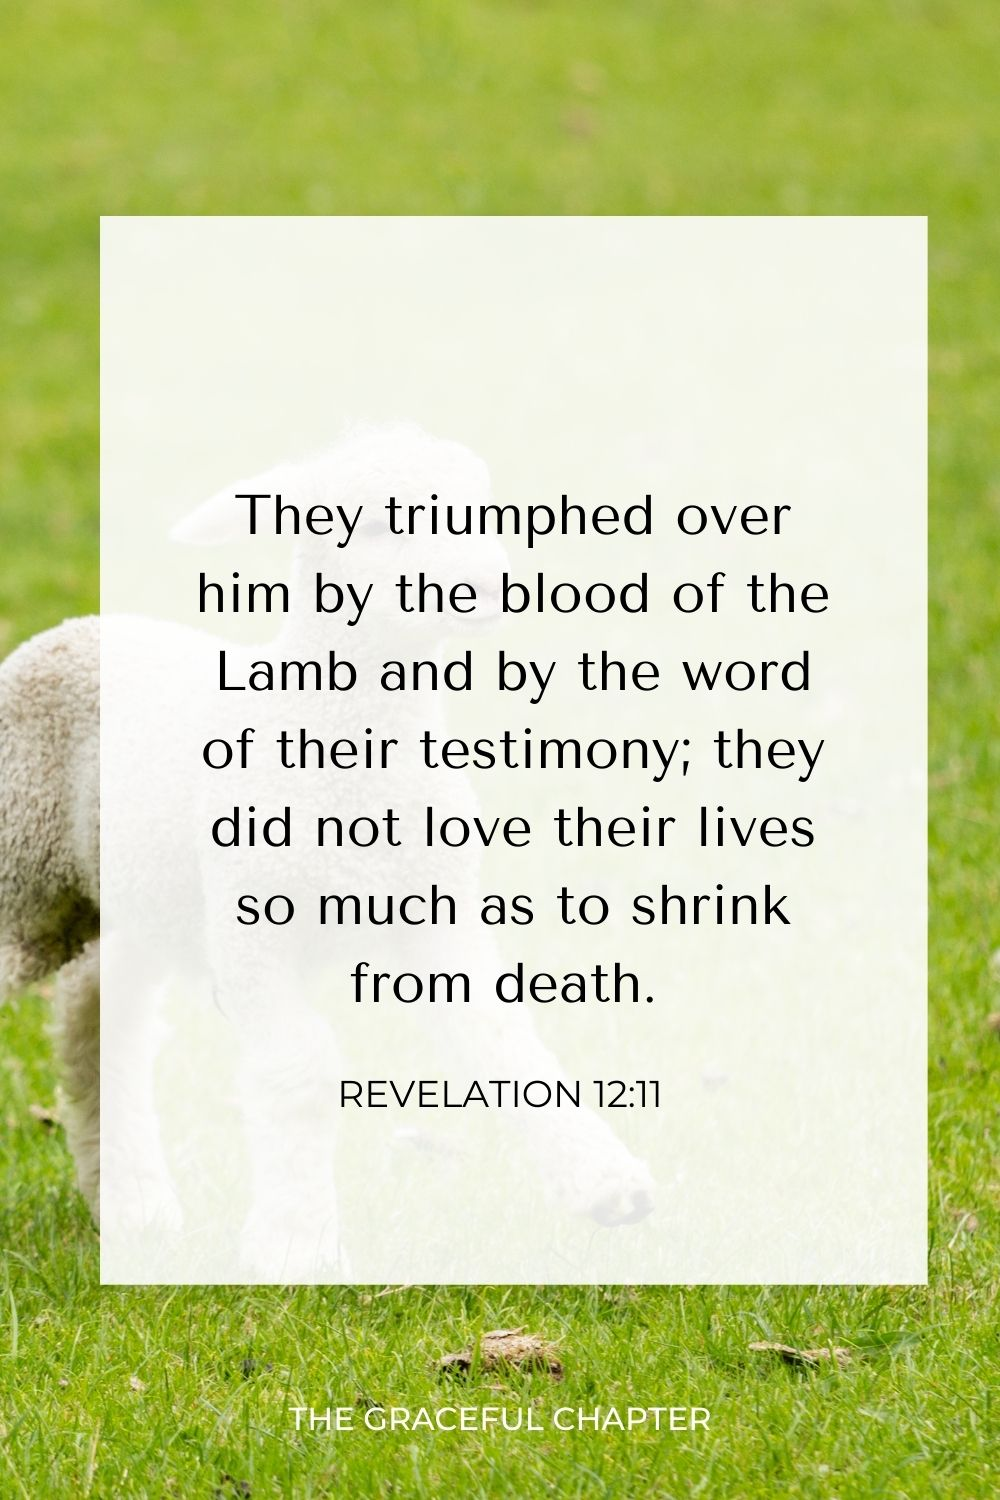 They triumphed over him by the blood of the Lamb and by the word of their testimony; they did not love their lives so much as to shrink from death. Revelation 12:11